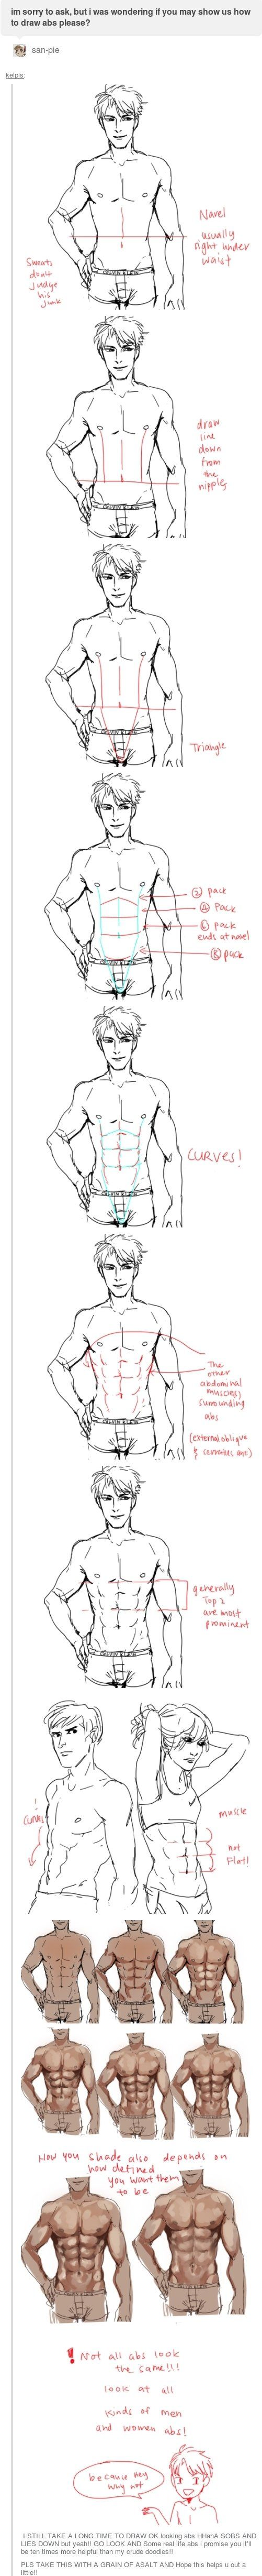 How to draw abs - drawing reference